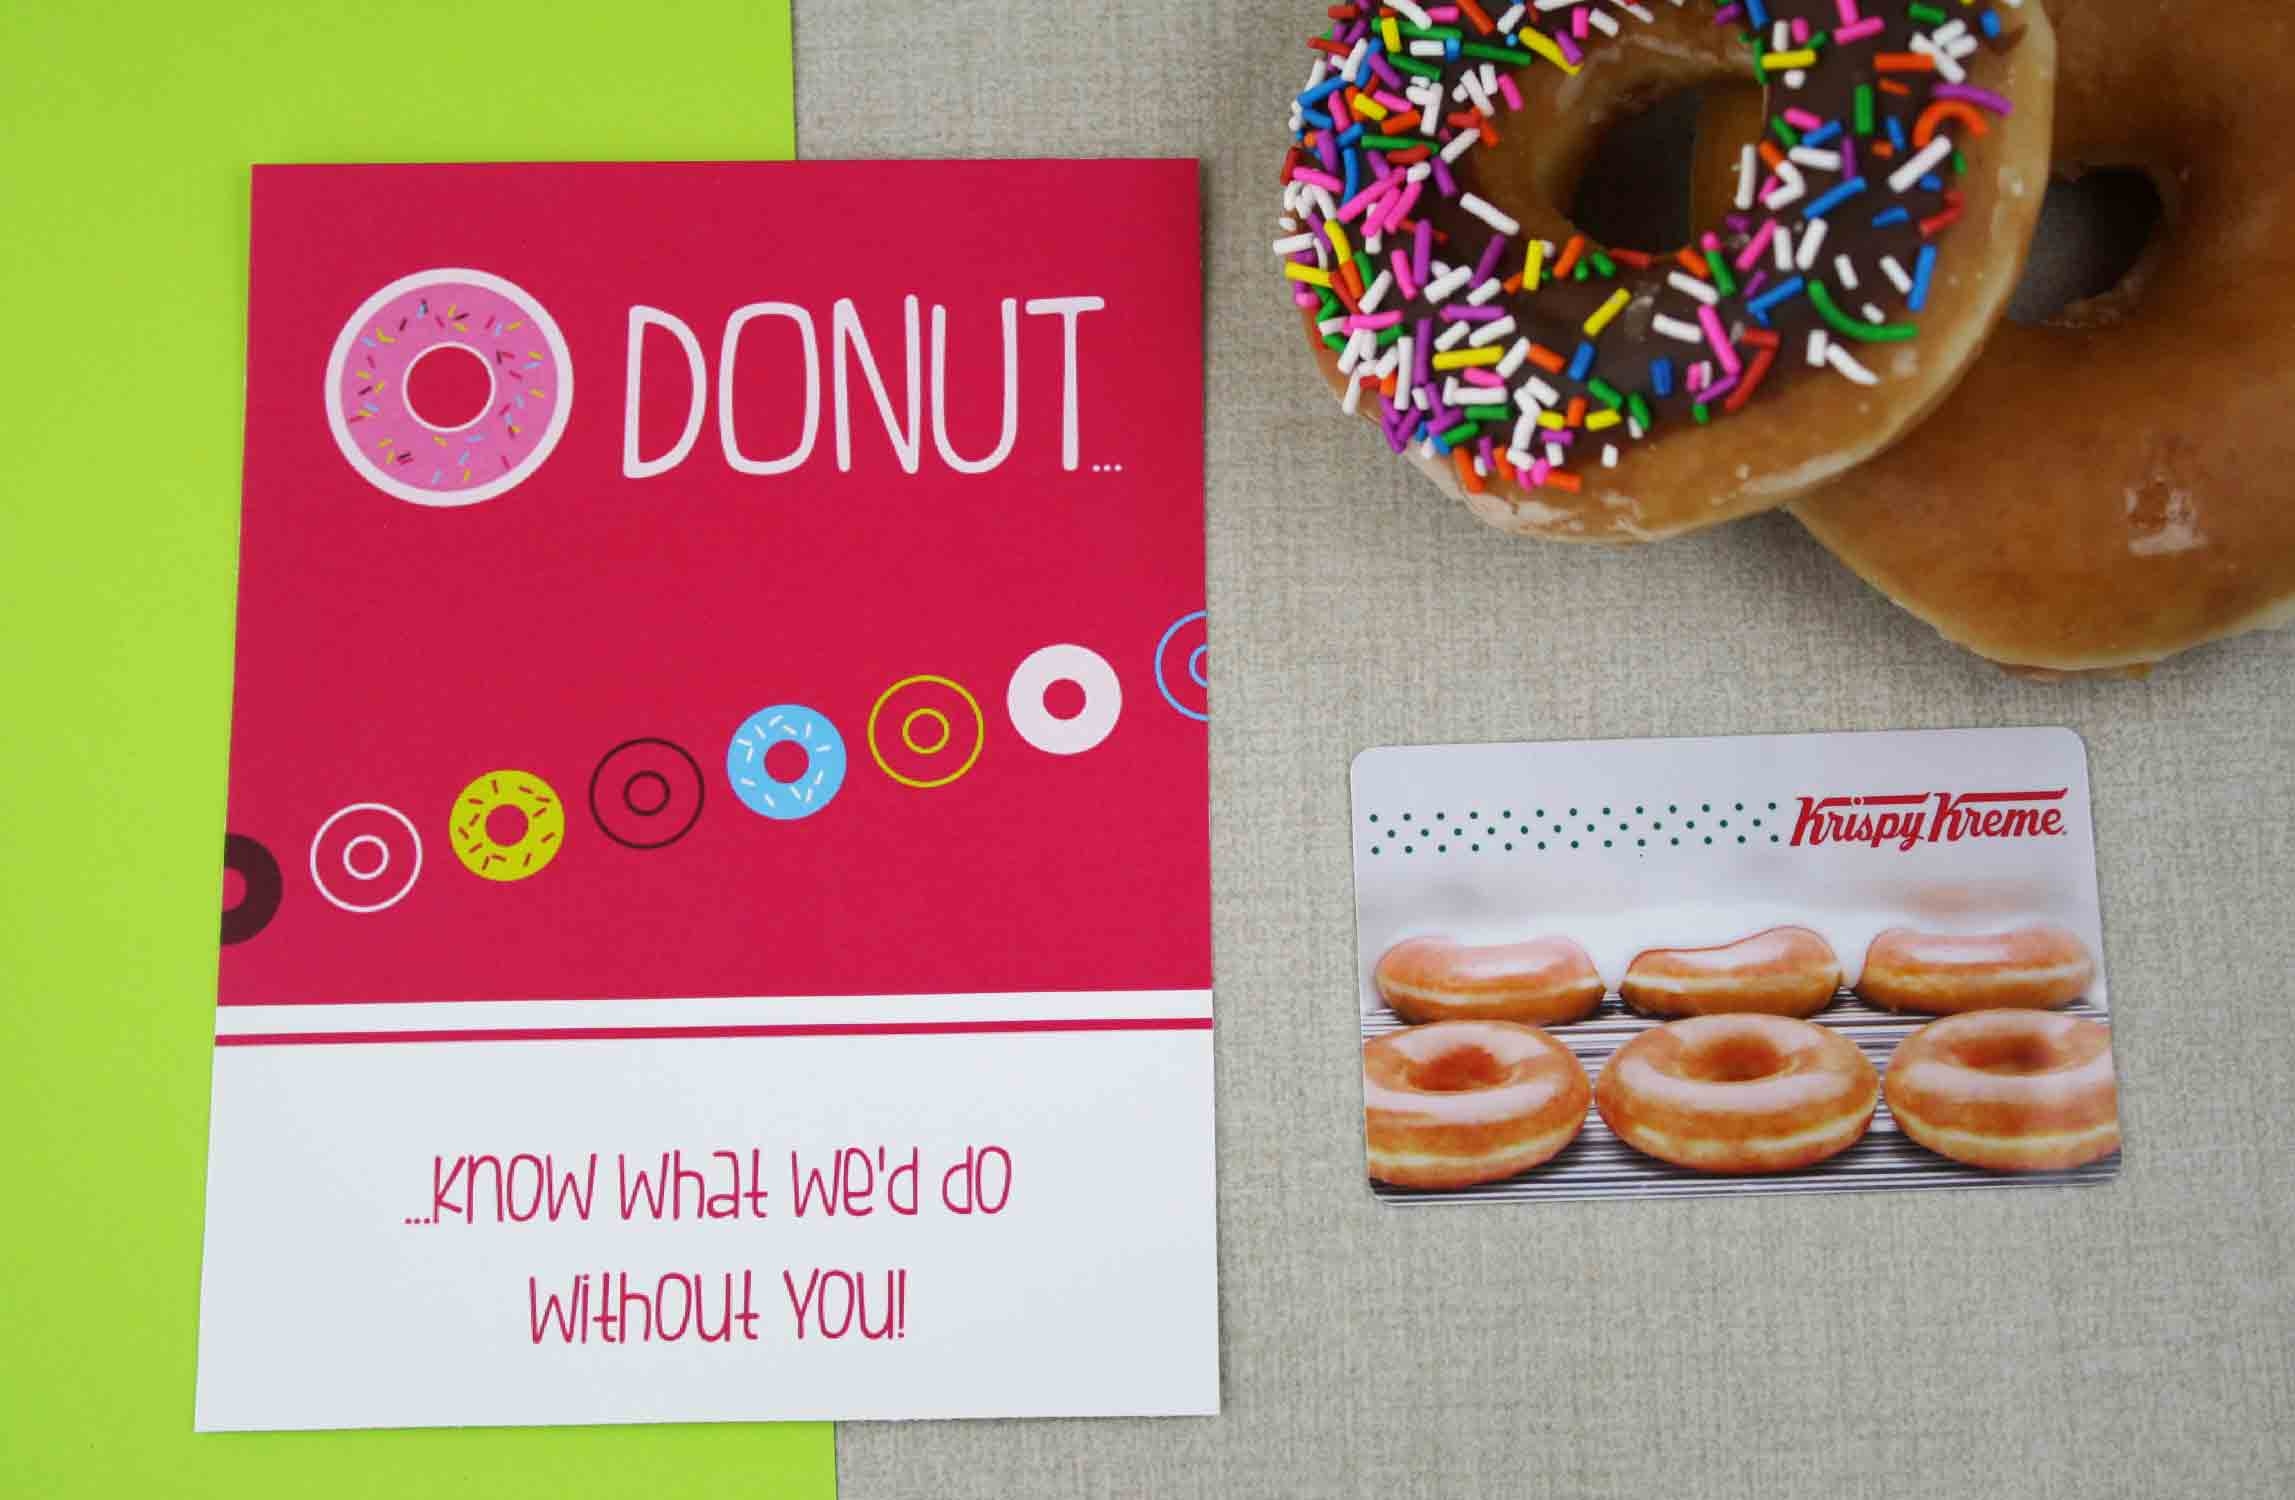 DONUT know what to do without you teacher supplies